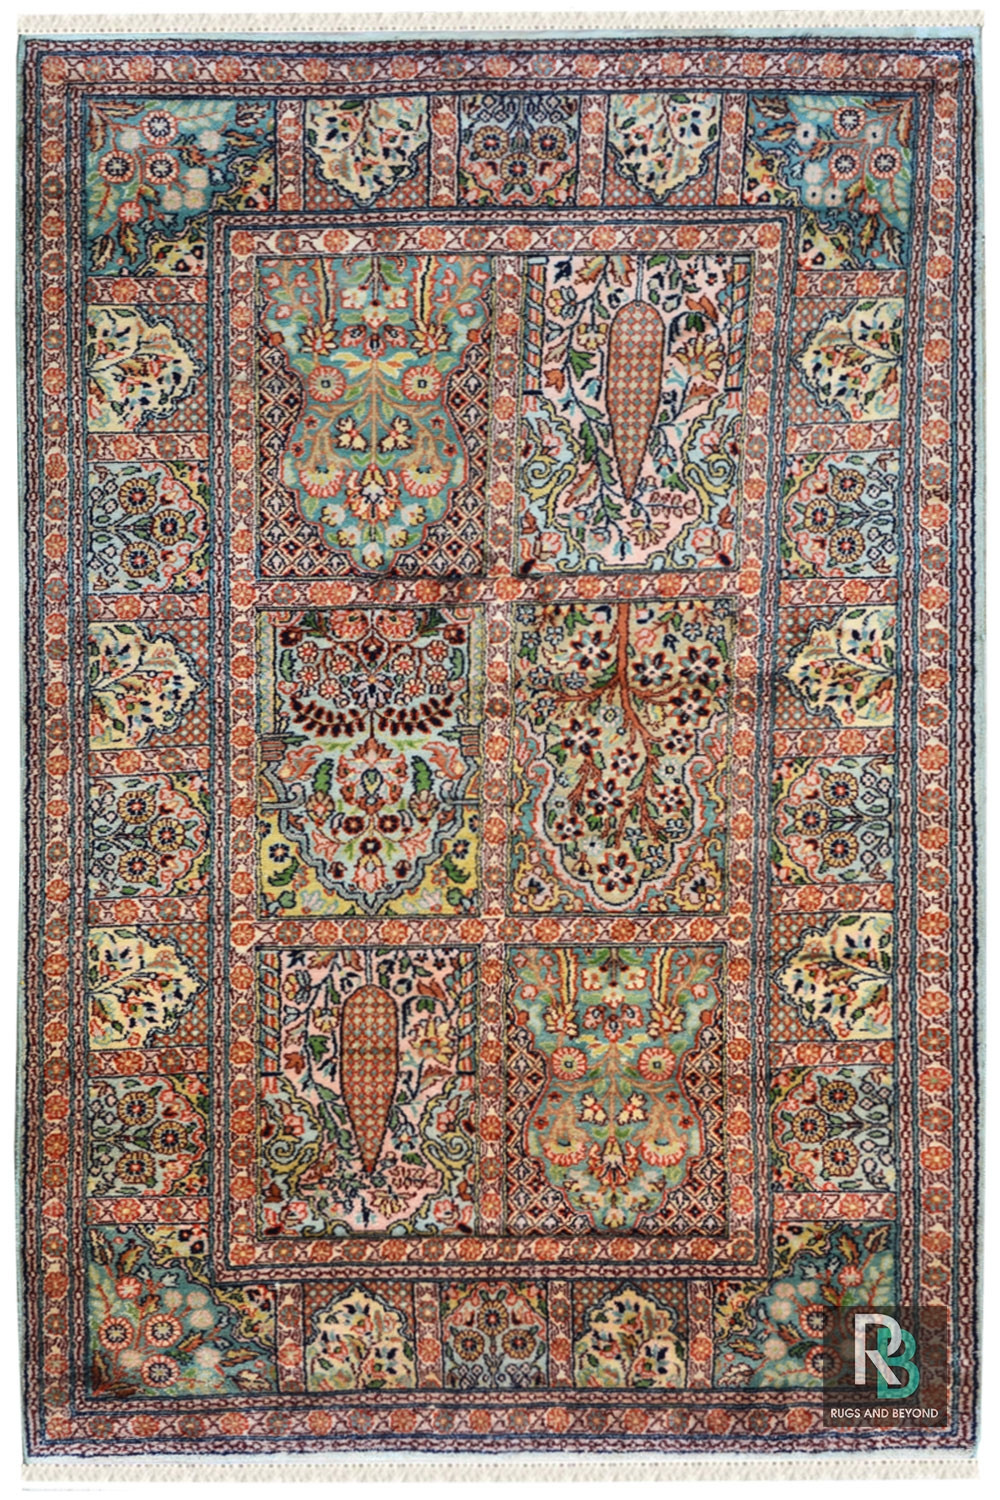 Get Jewel Boxes Hamadan Silk On Cotton Handmade Rug At